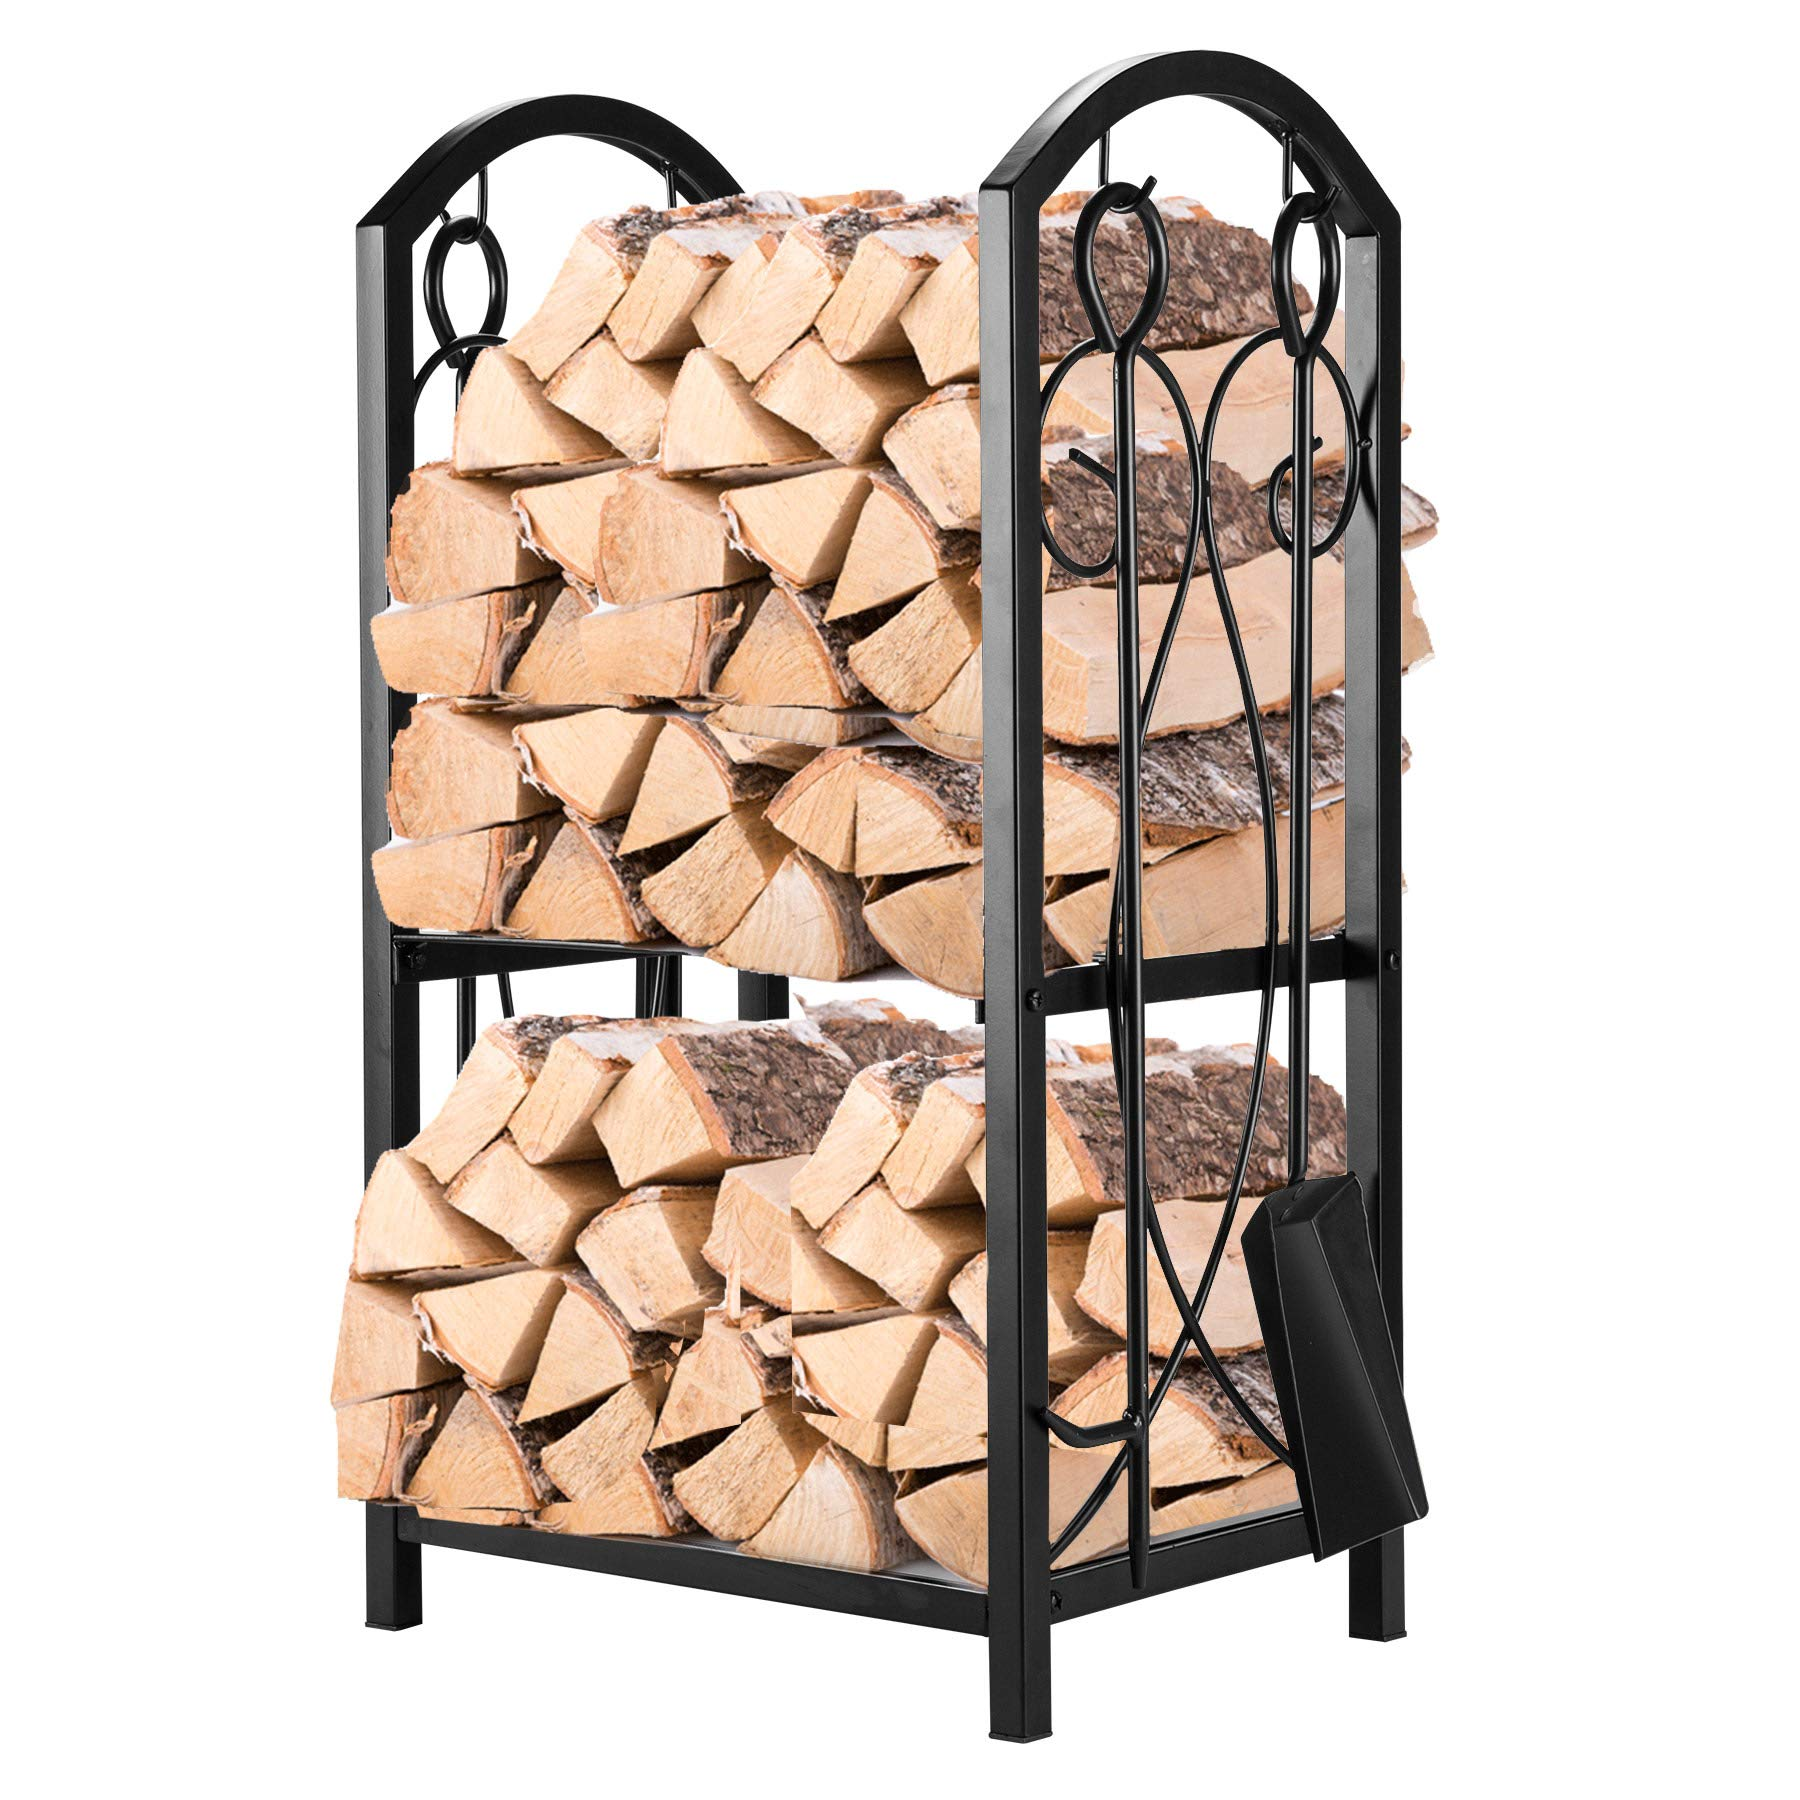 Pinty Firewood Log Rack with 4 Tools Firewood Storage Fireplace Tool Set Indoor Outdoor Wrought Iron Firewood Holders Lumber Storage Stacking Black by Pinty